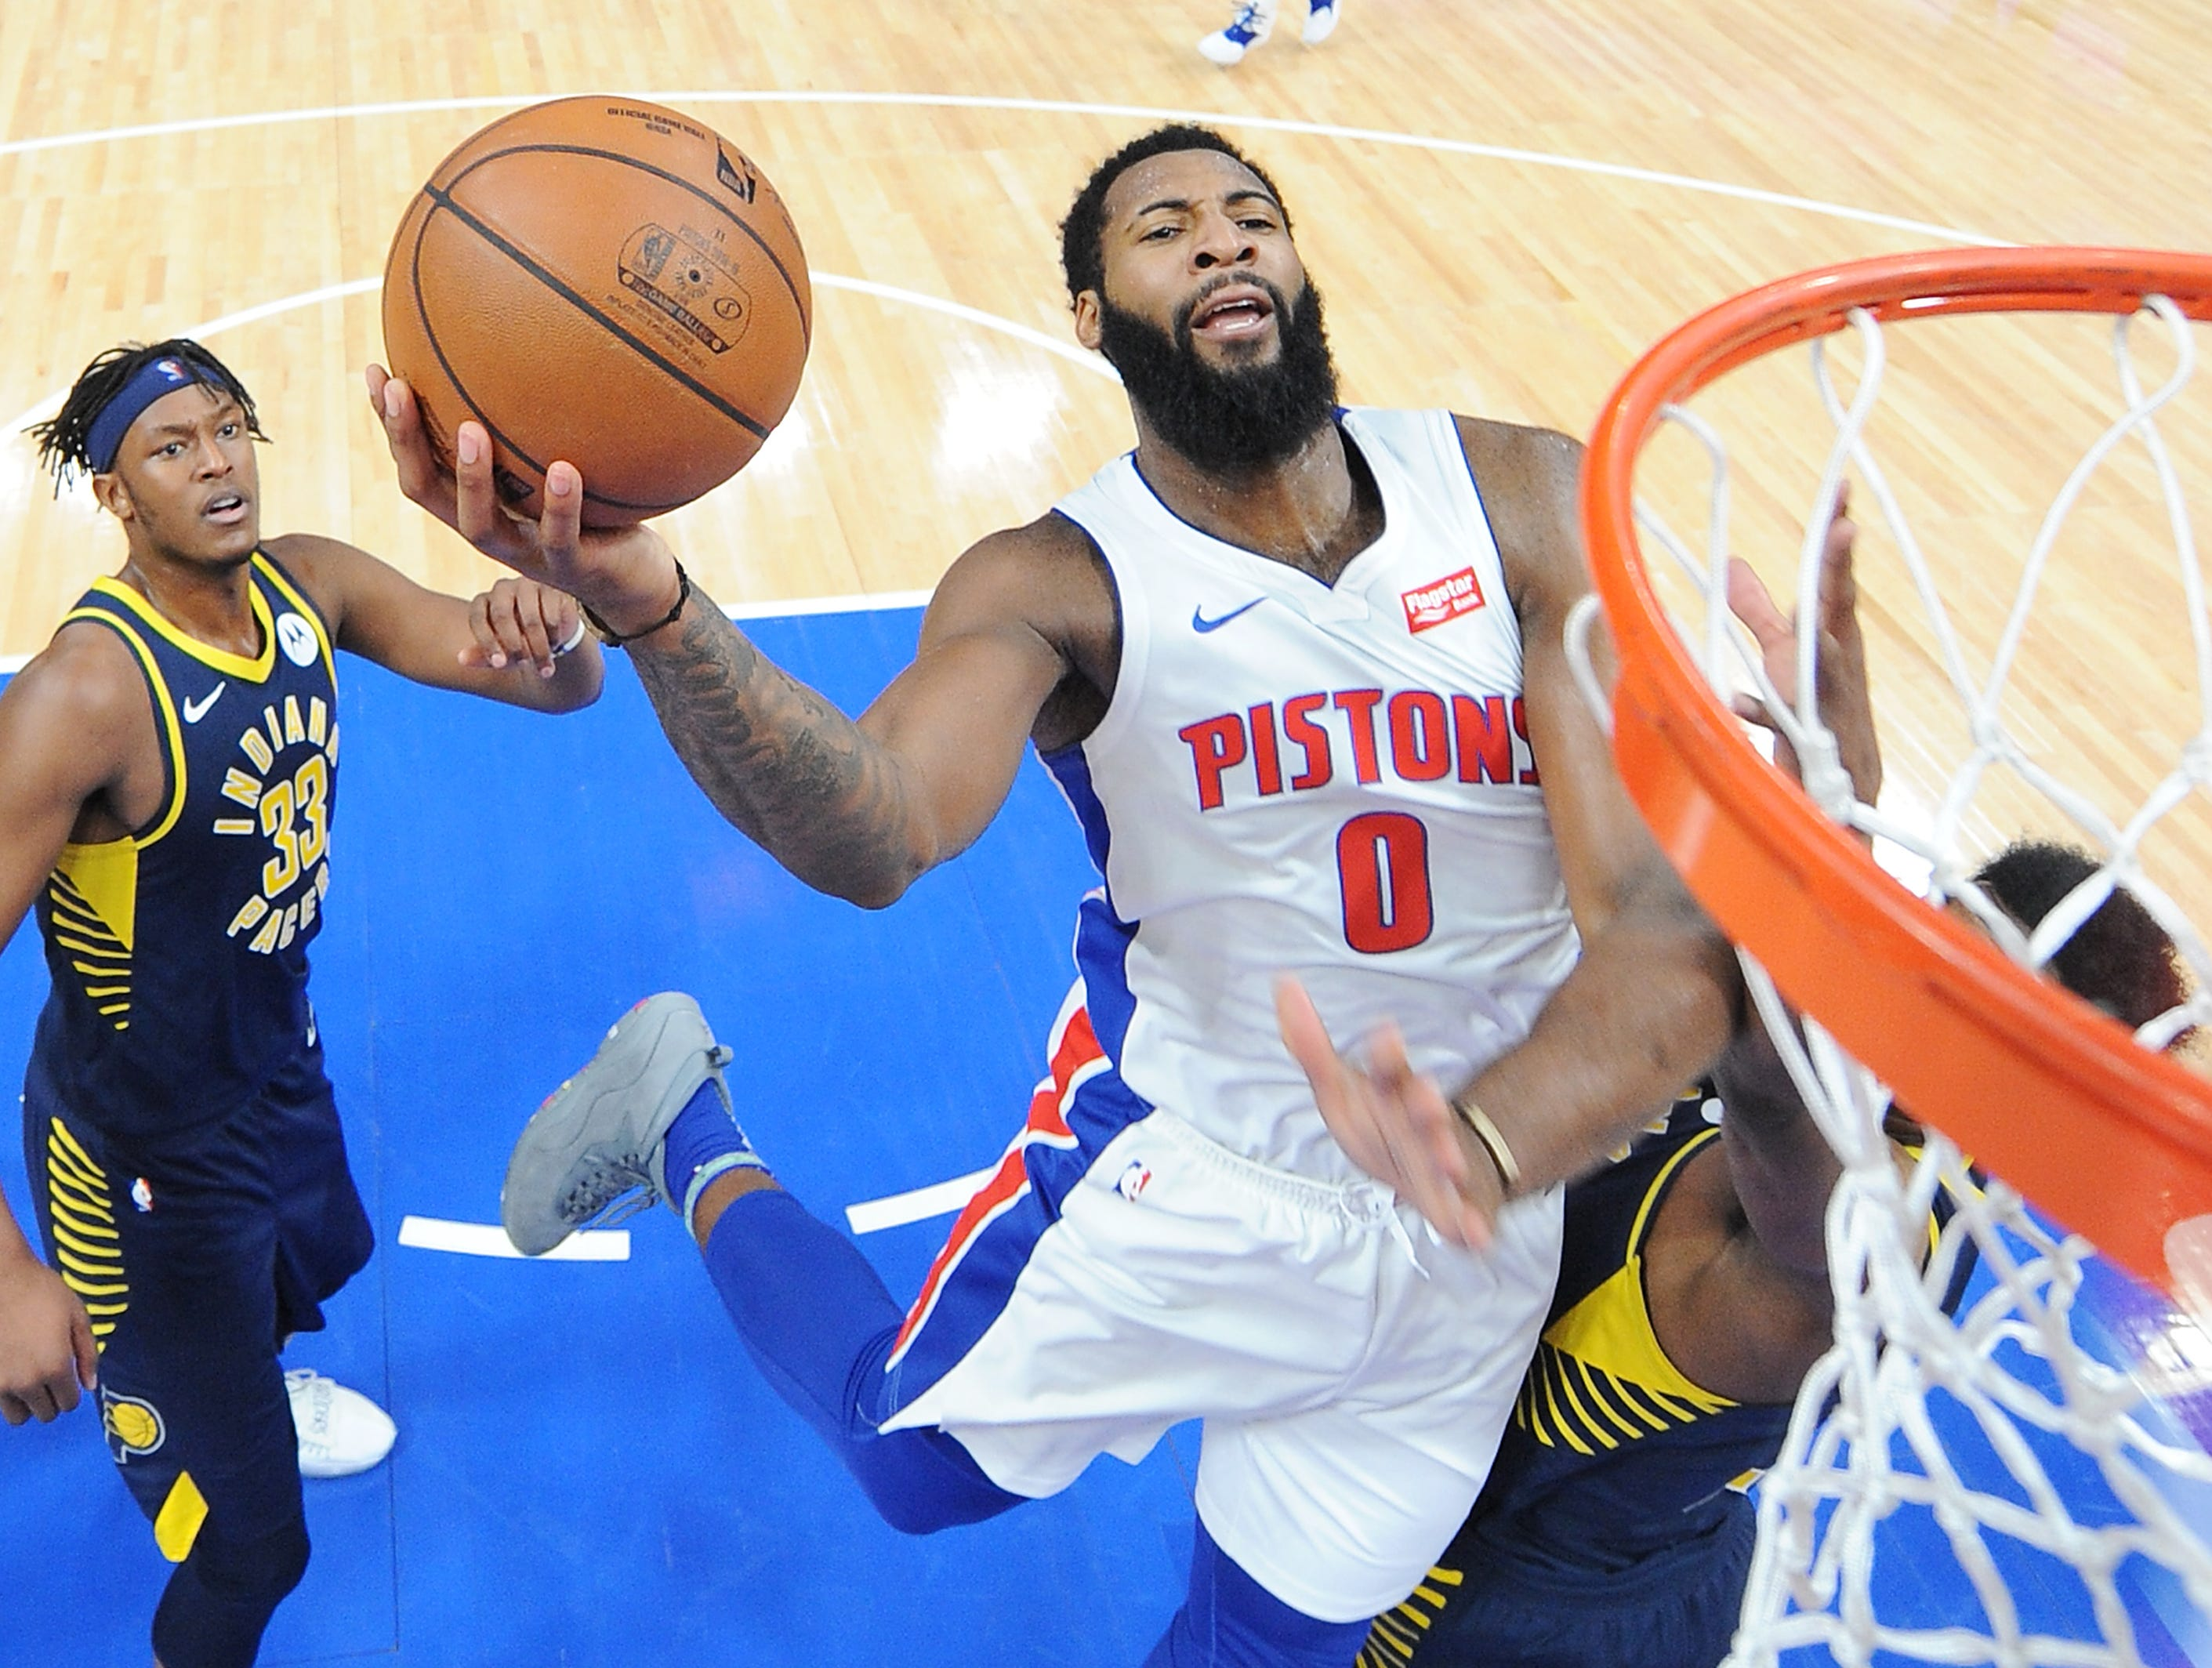 Pistons' Andre Drummond shoots over Pacers' Thaddeus Young in the third quarter. Drummond had a game high 28 points and 19 rebounds.